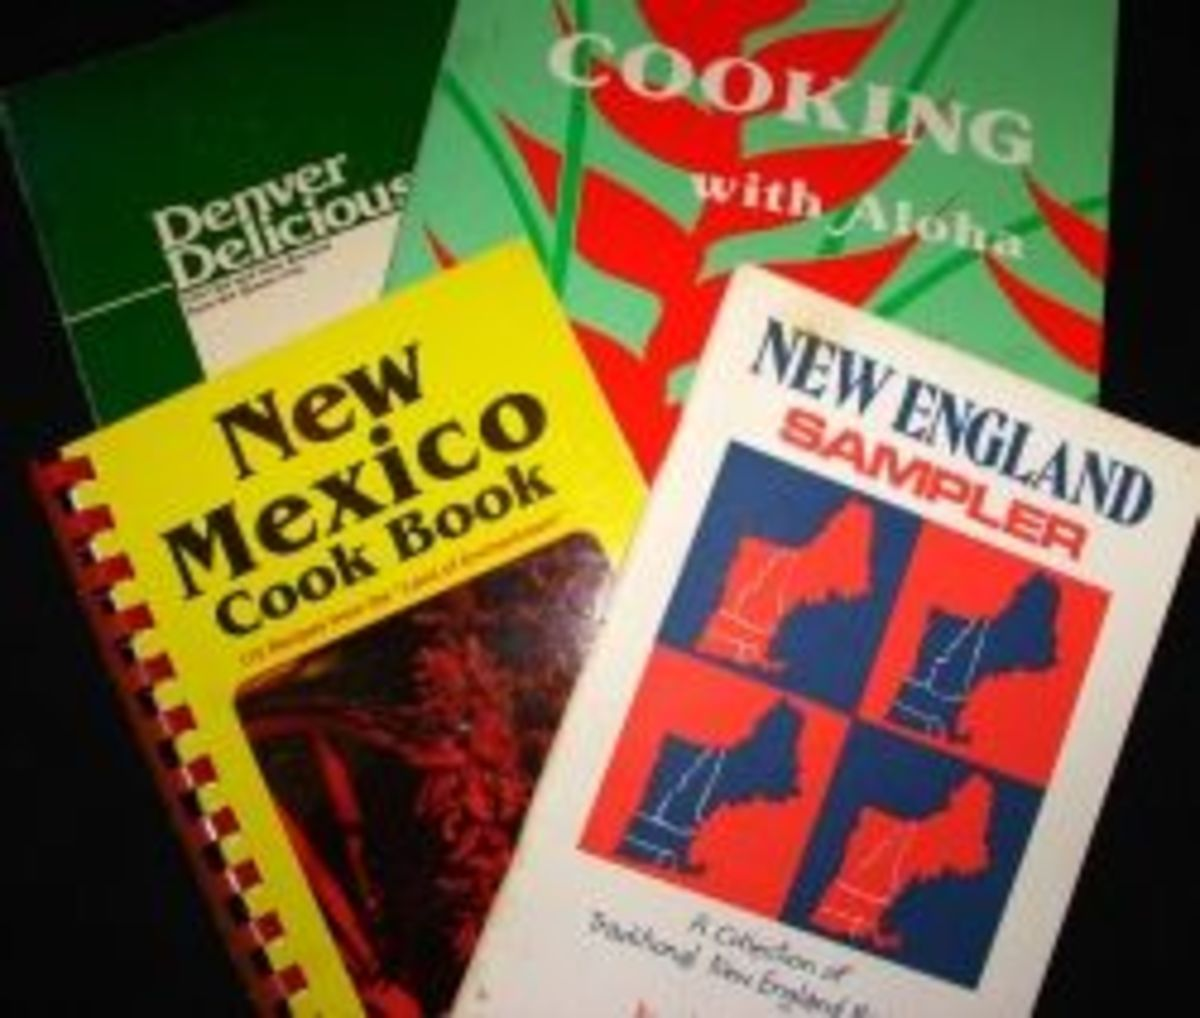 My Collection of Regional Cookbooks by Diane Cass